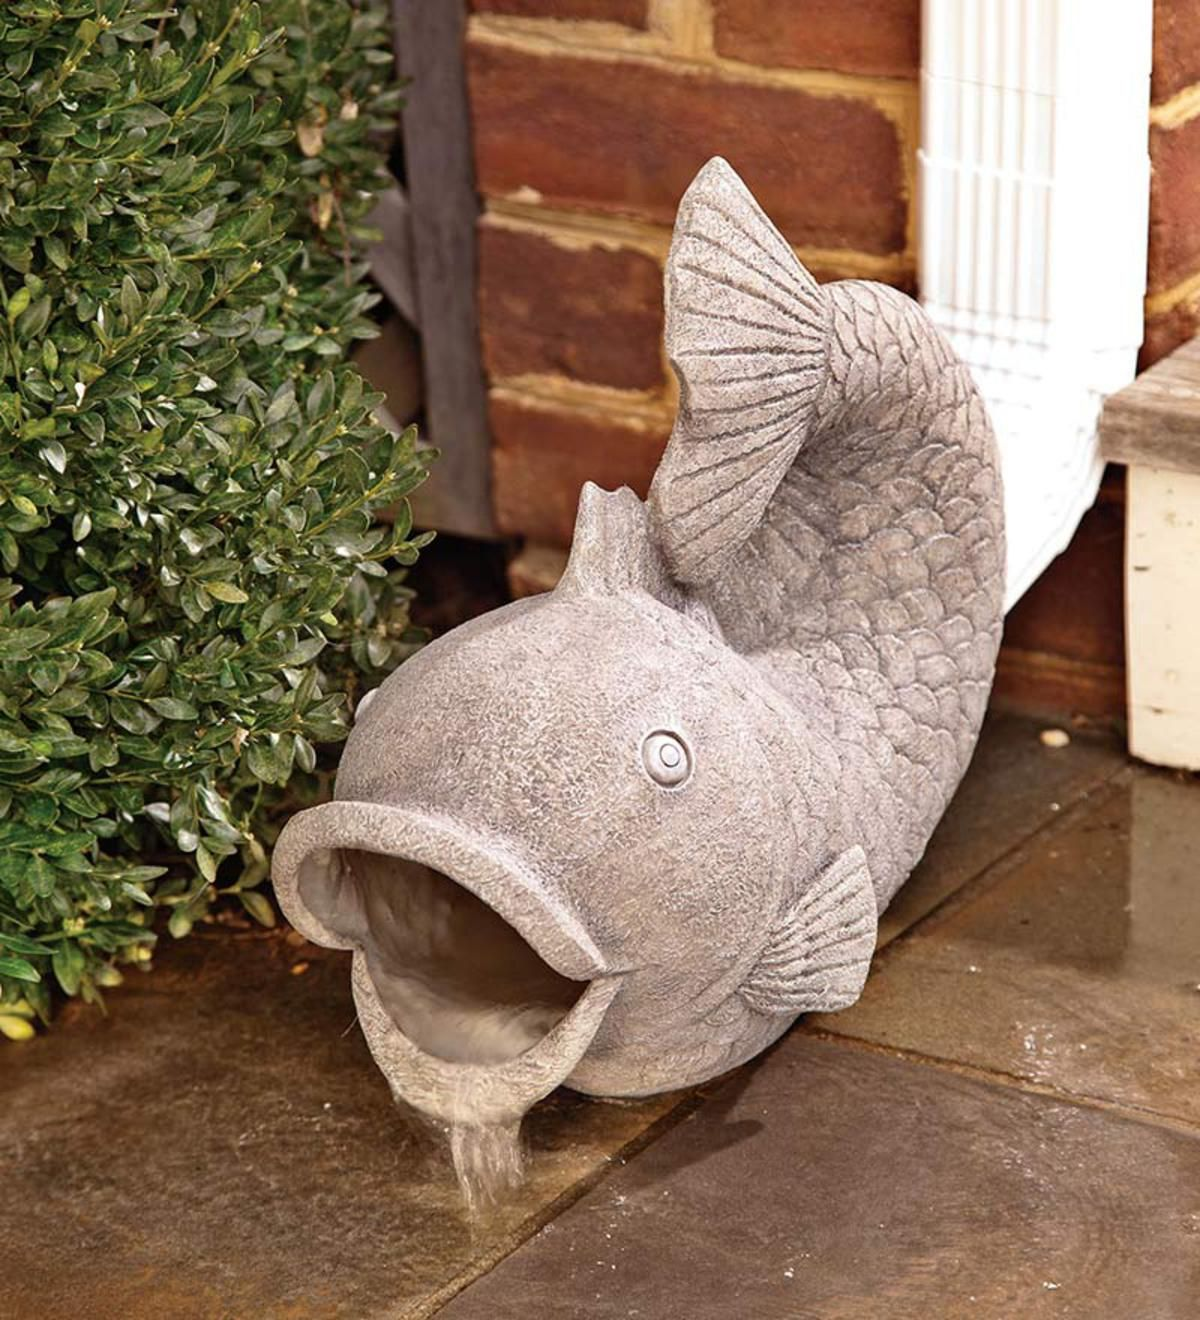 Our Friendly Fish Decorative Garden Downspout Cheerfully Steers Water From Your Gutters Onto Your Lawn Slip T Fish Garden Decorative Downspouts Garden Statues